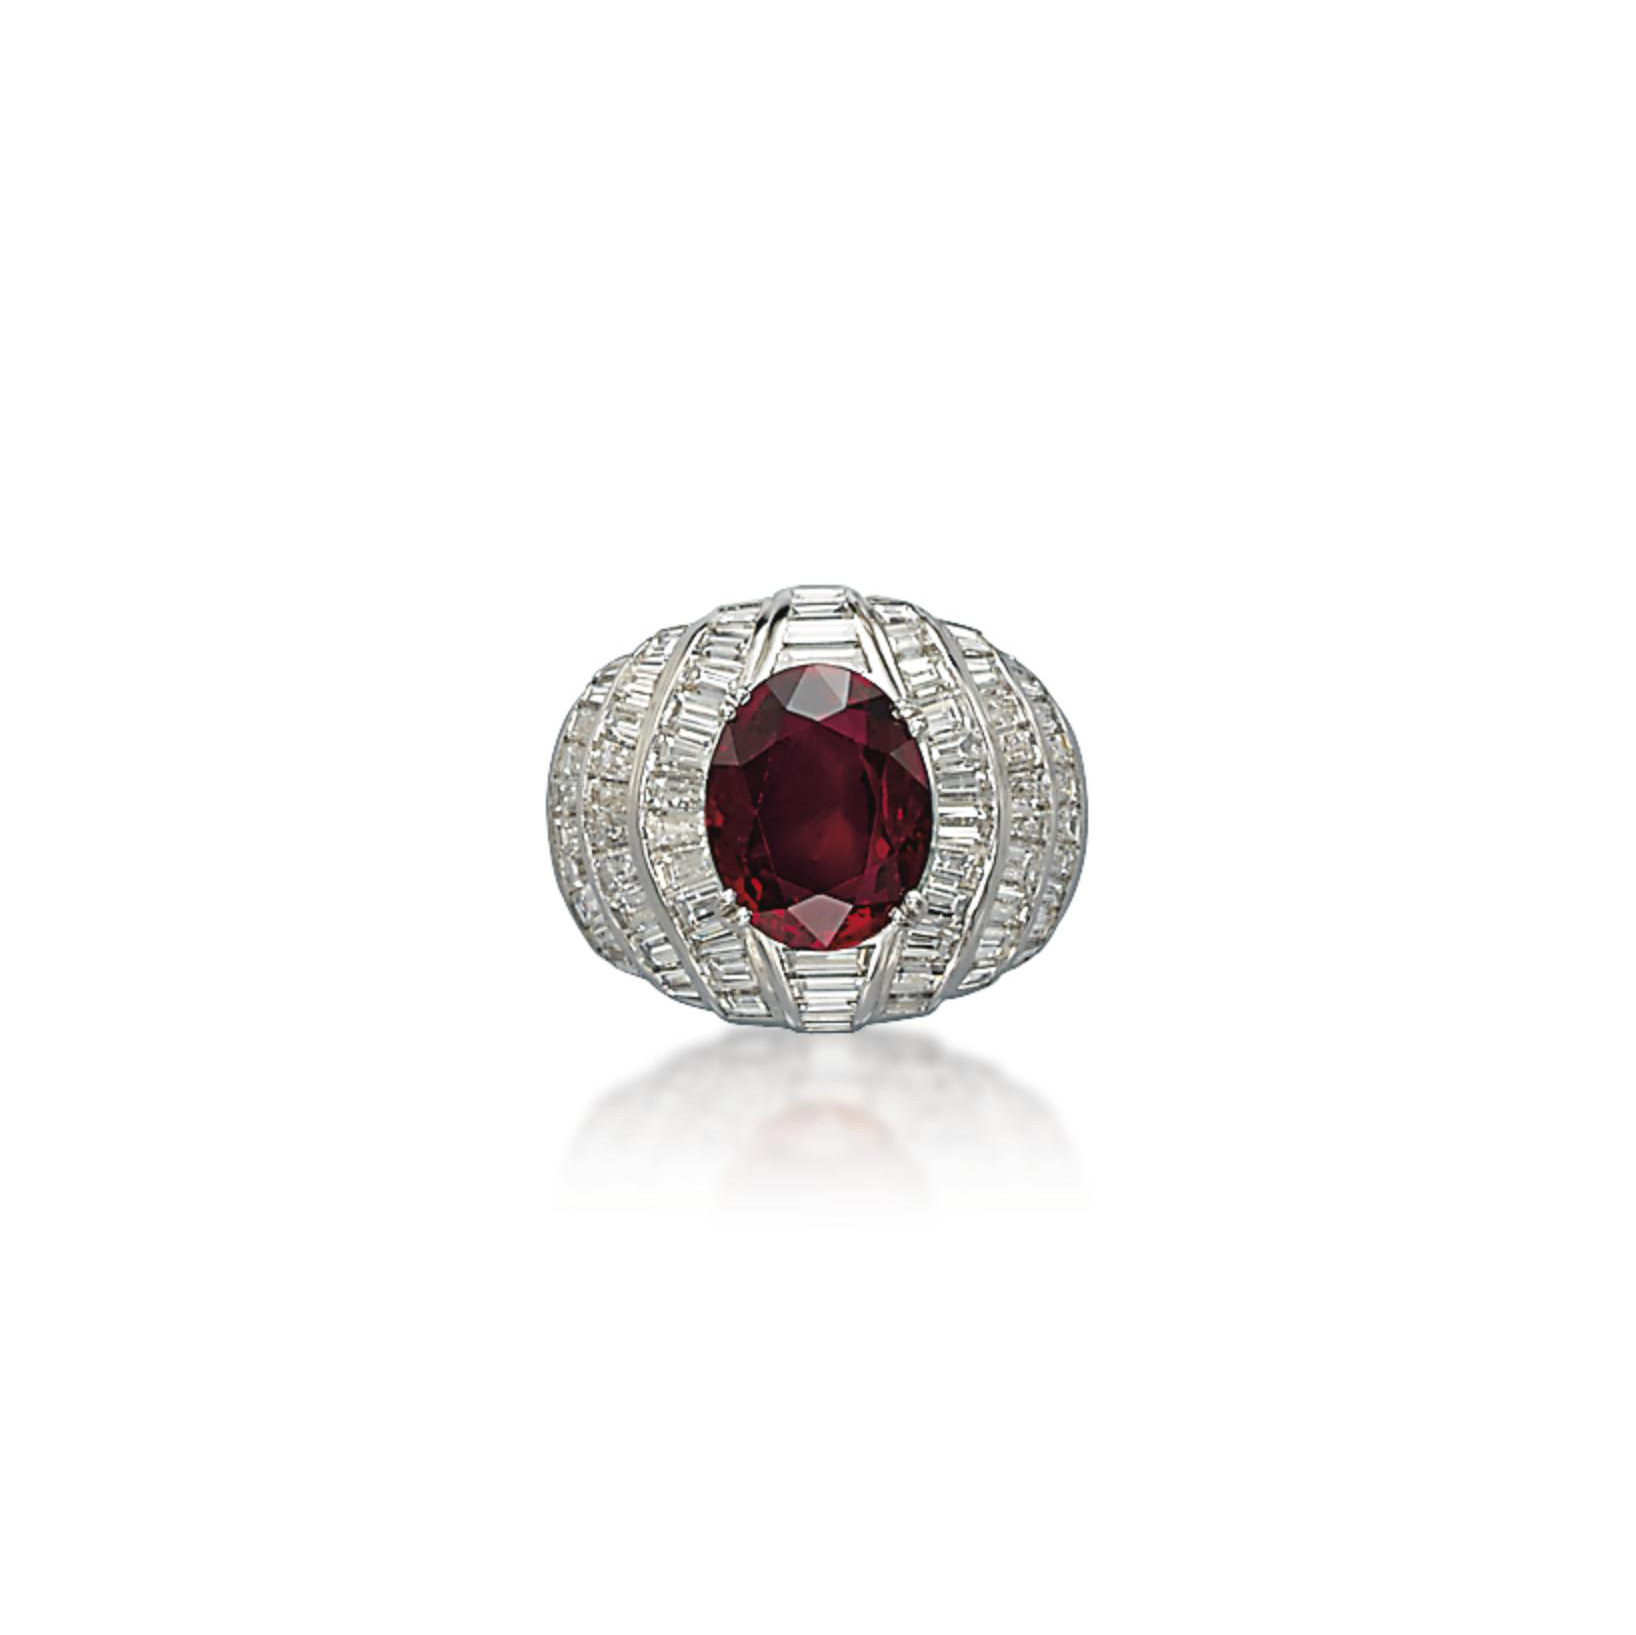 A RUBY AND DIAMOND RING, BY FASANO